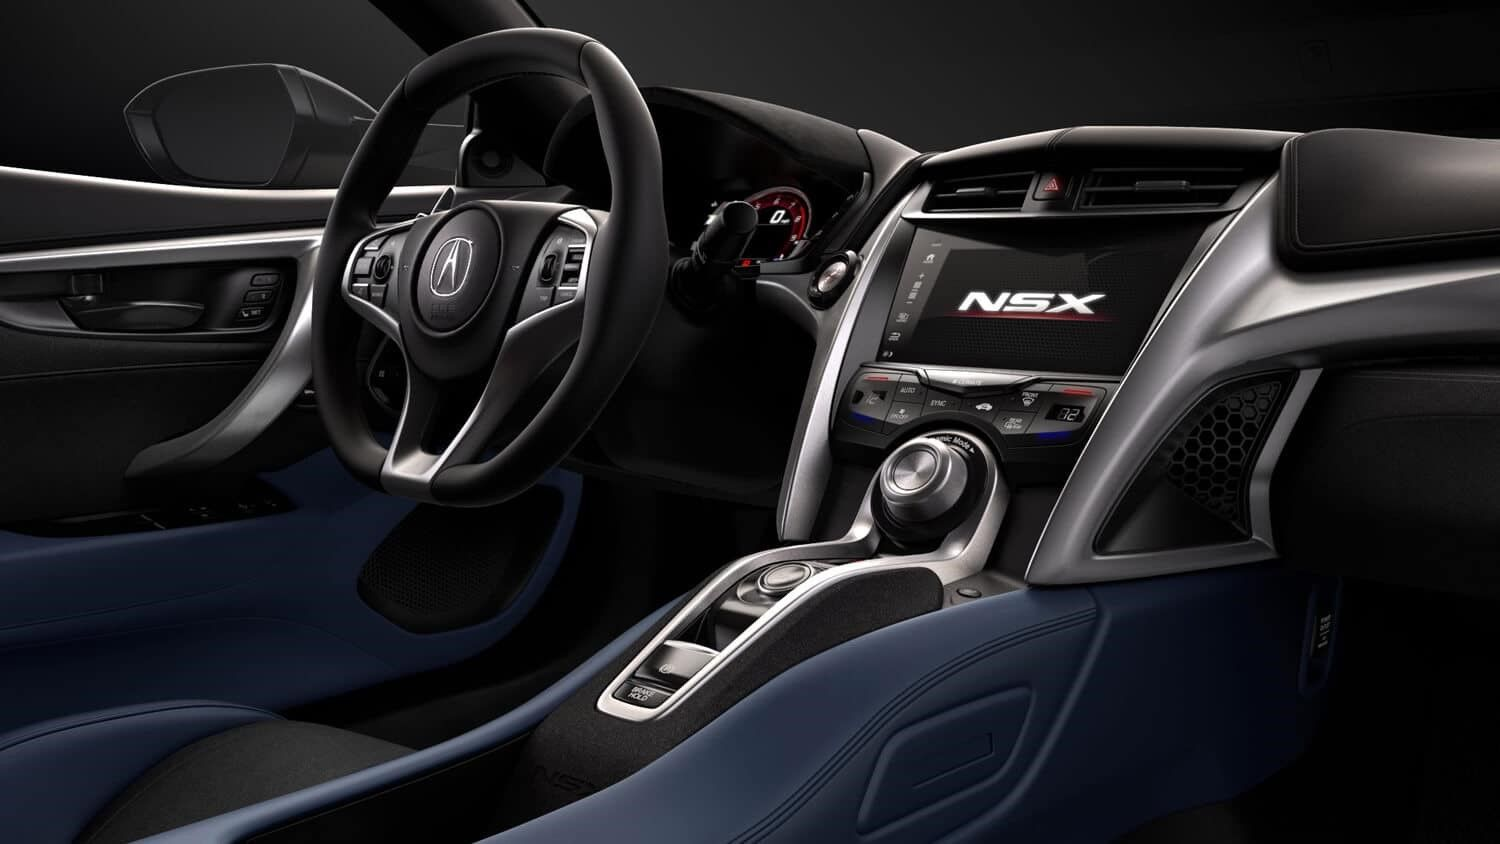 2021 Acura NSX Coupe Infotainment System